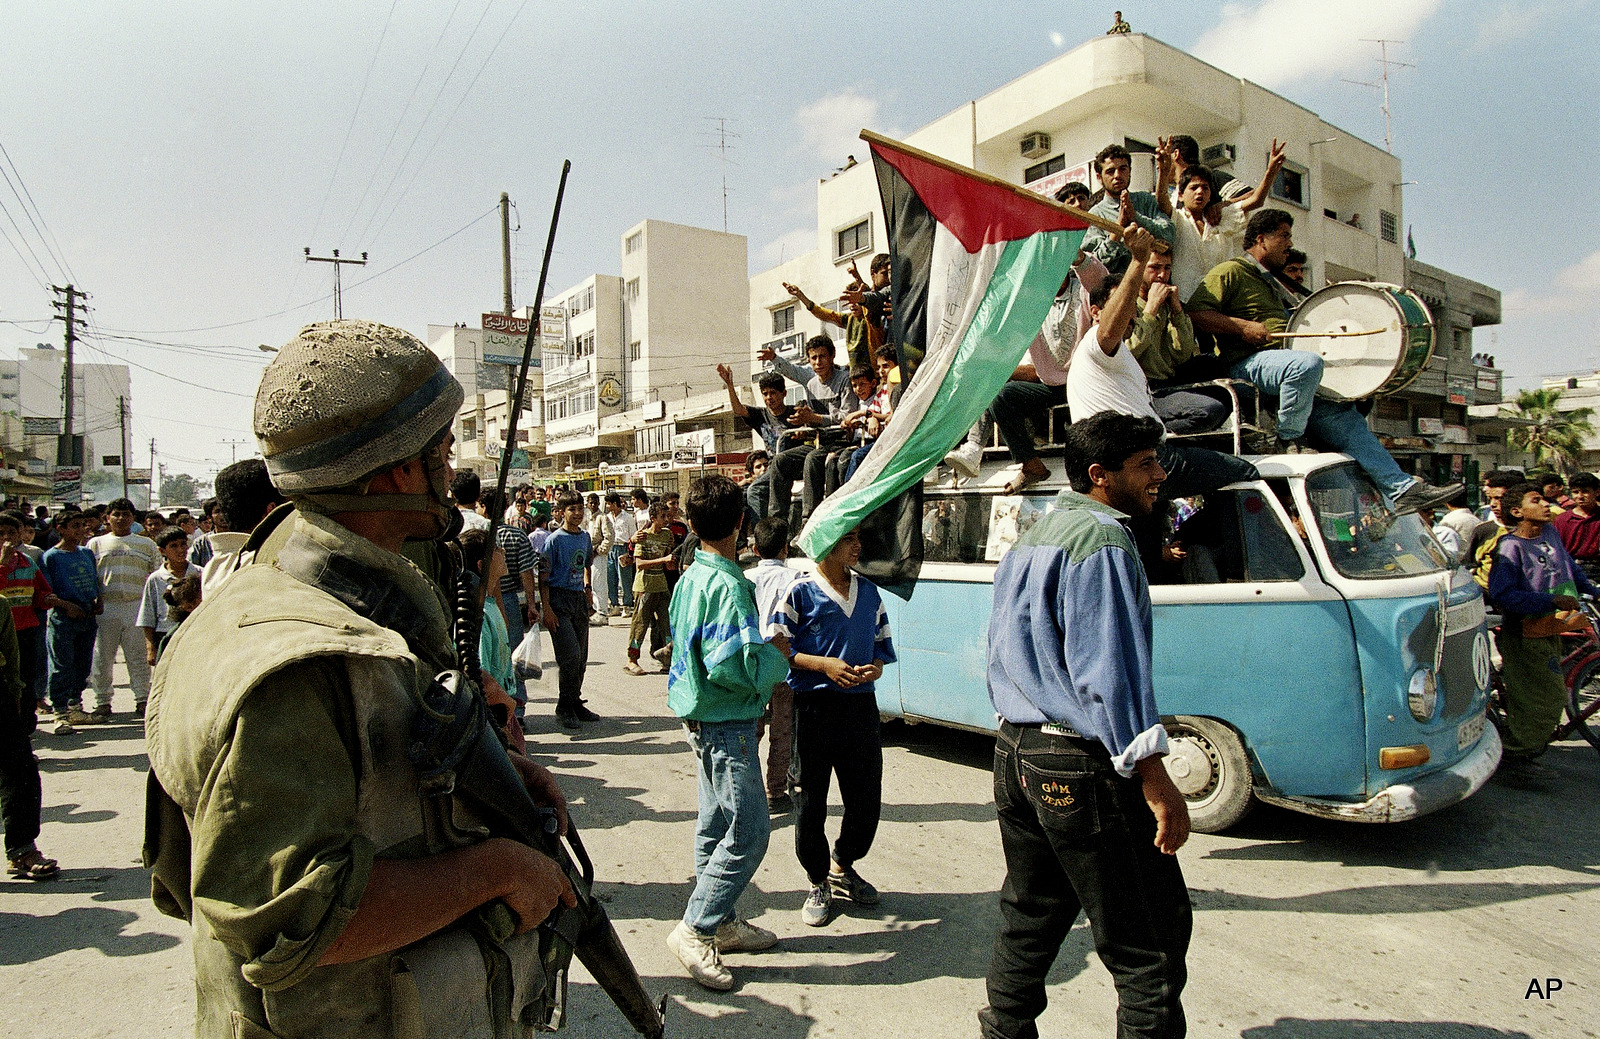 An Israeli soldier looks on as jubilant Palestinians ride on a truck celebrating the signing of the Israel-PLO agreement, May 4, 1994 in Gaza City, Gaza.